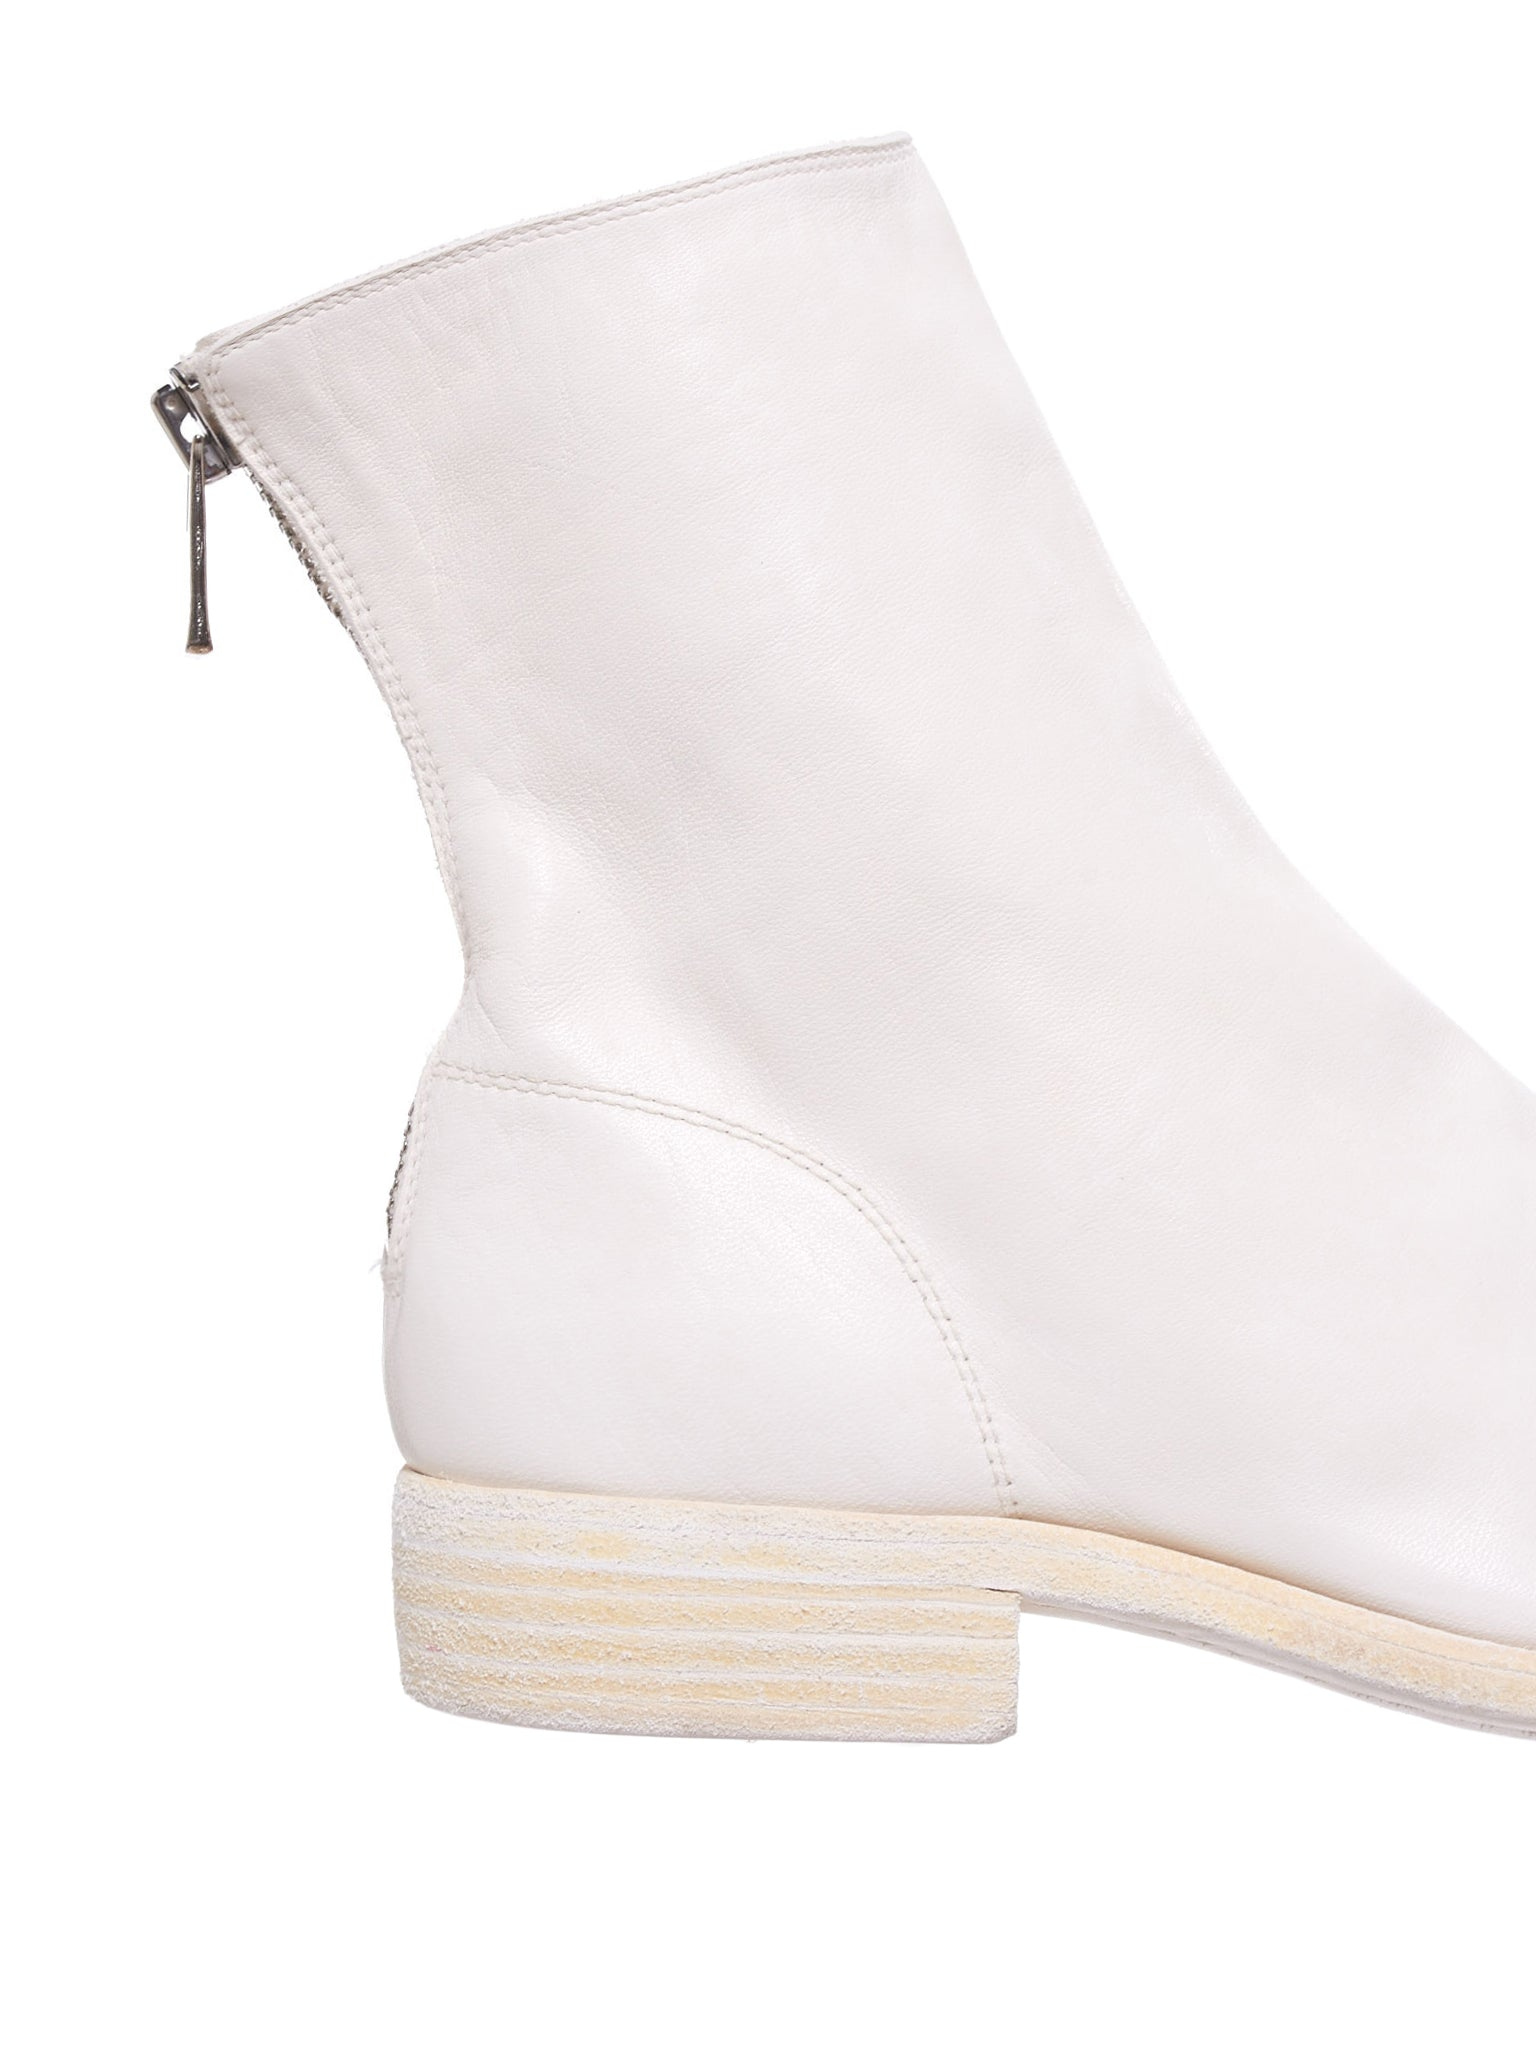 Object-Dyed Zipped Leather Boot (986-SOFT-HORSE-FG-CO00T)